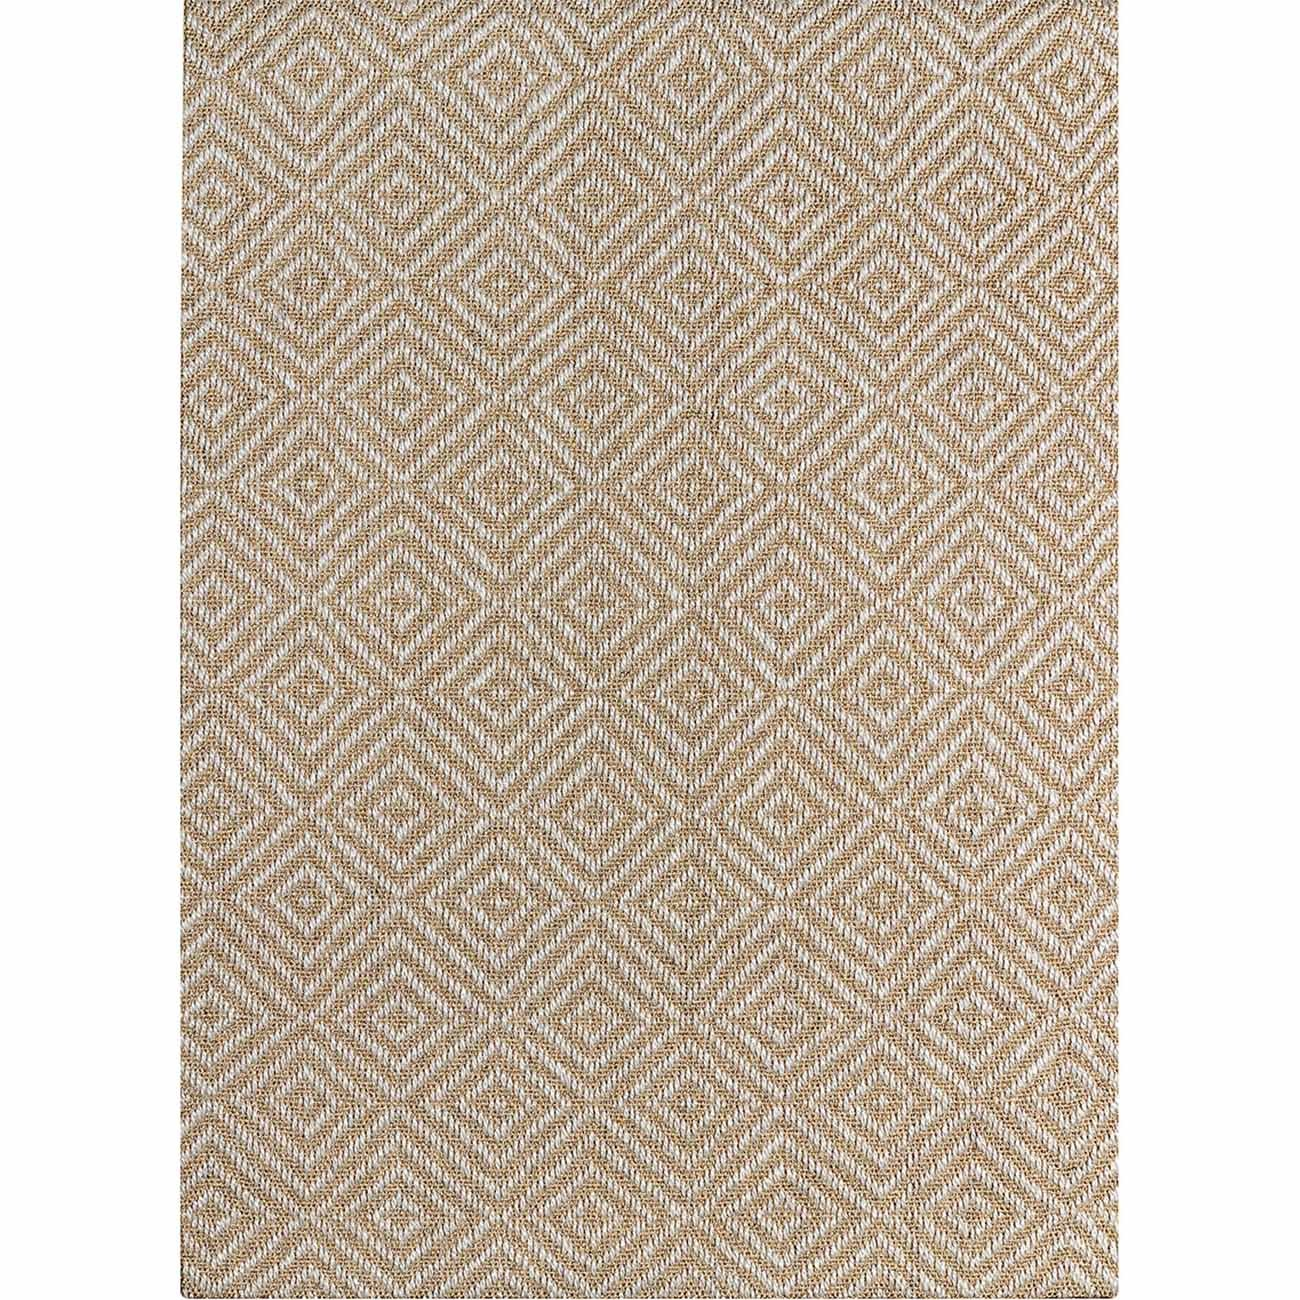 Tapete Sisal Diamante 130x220